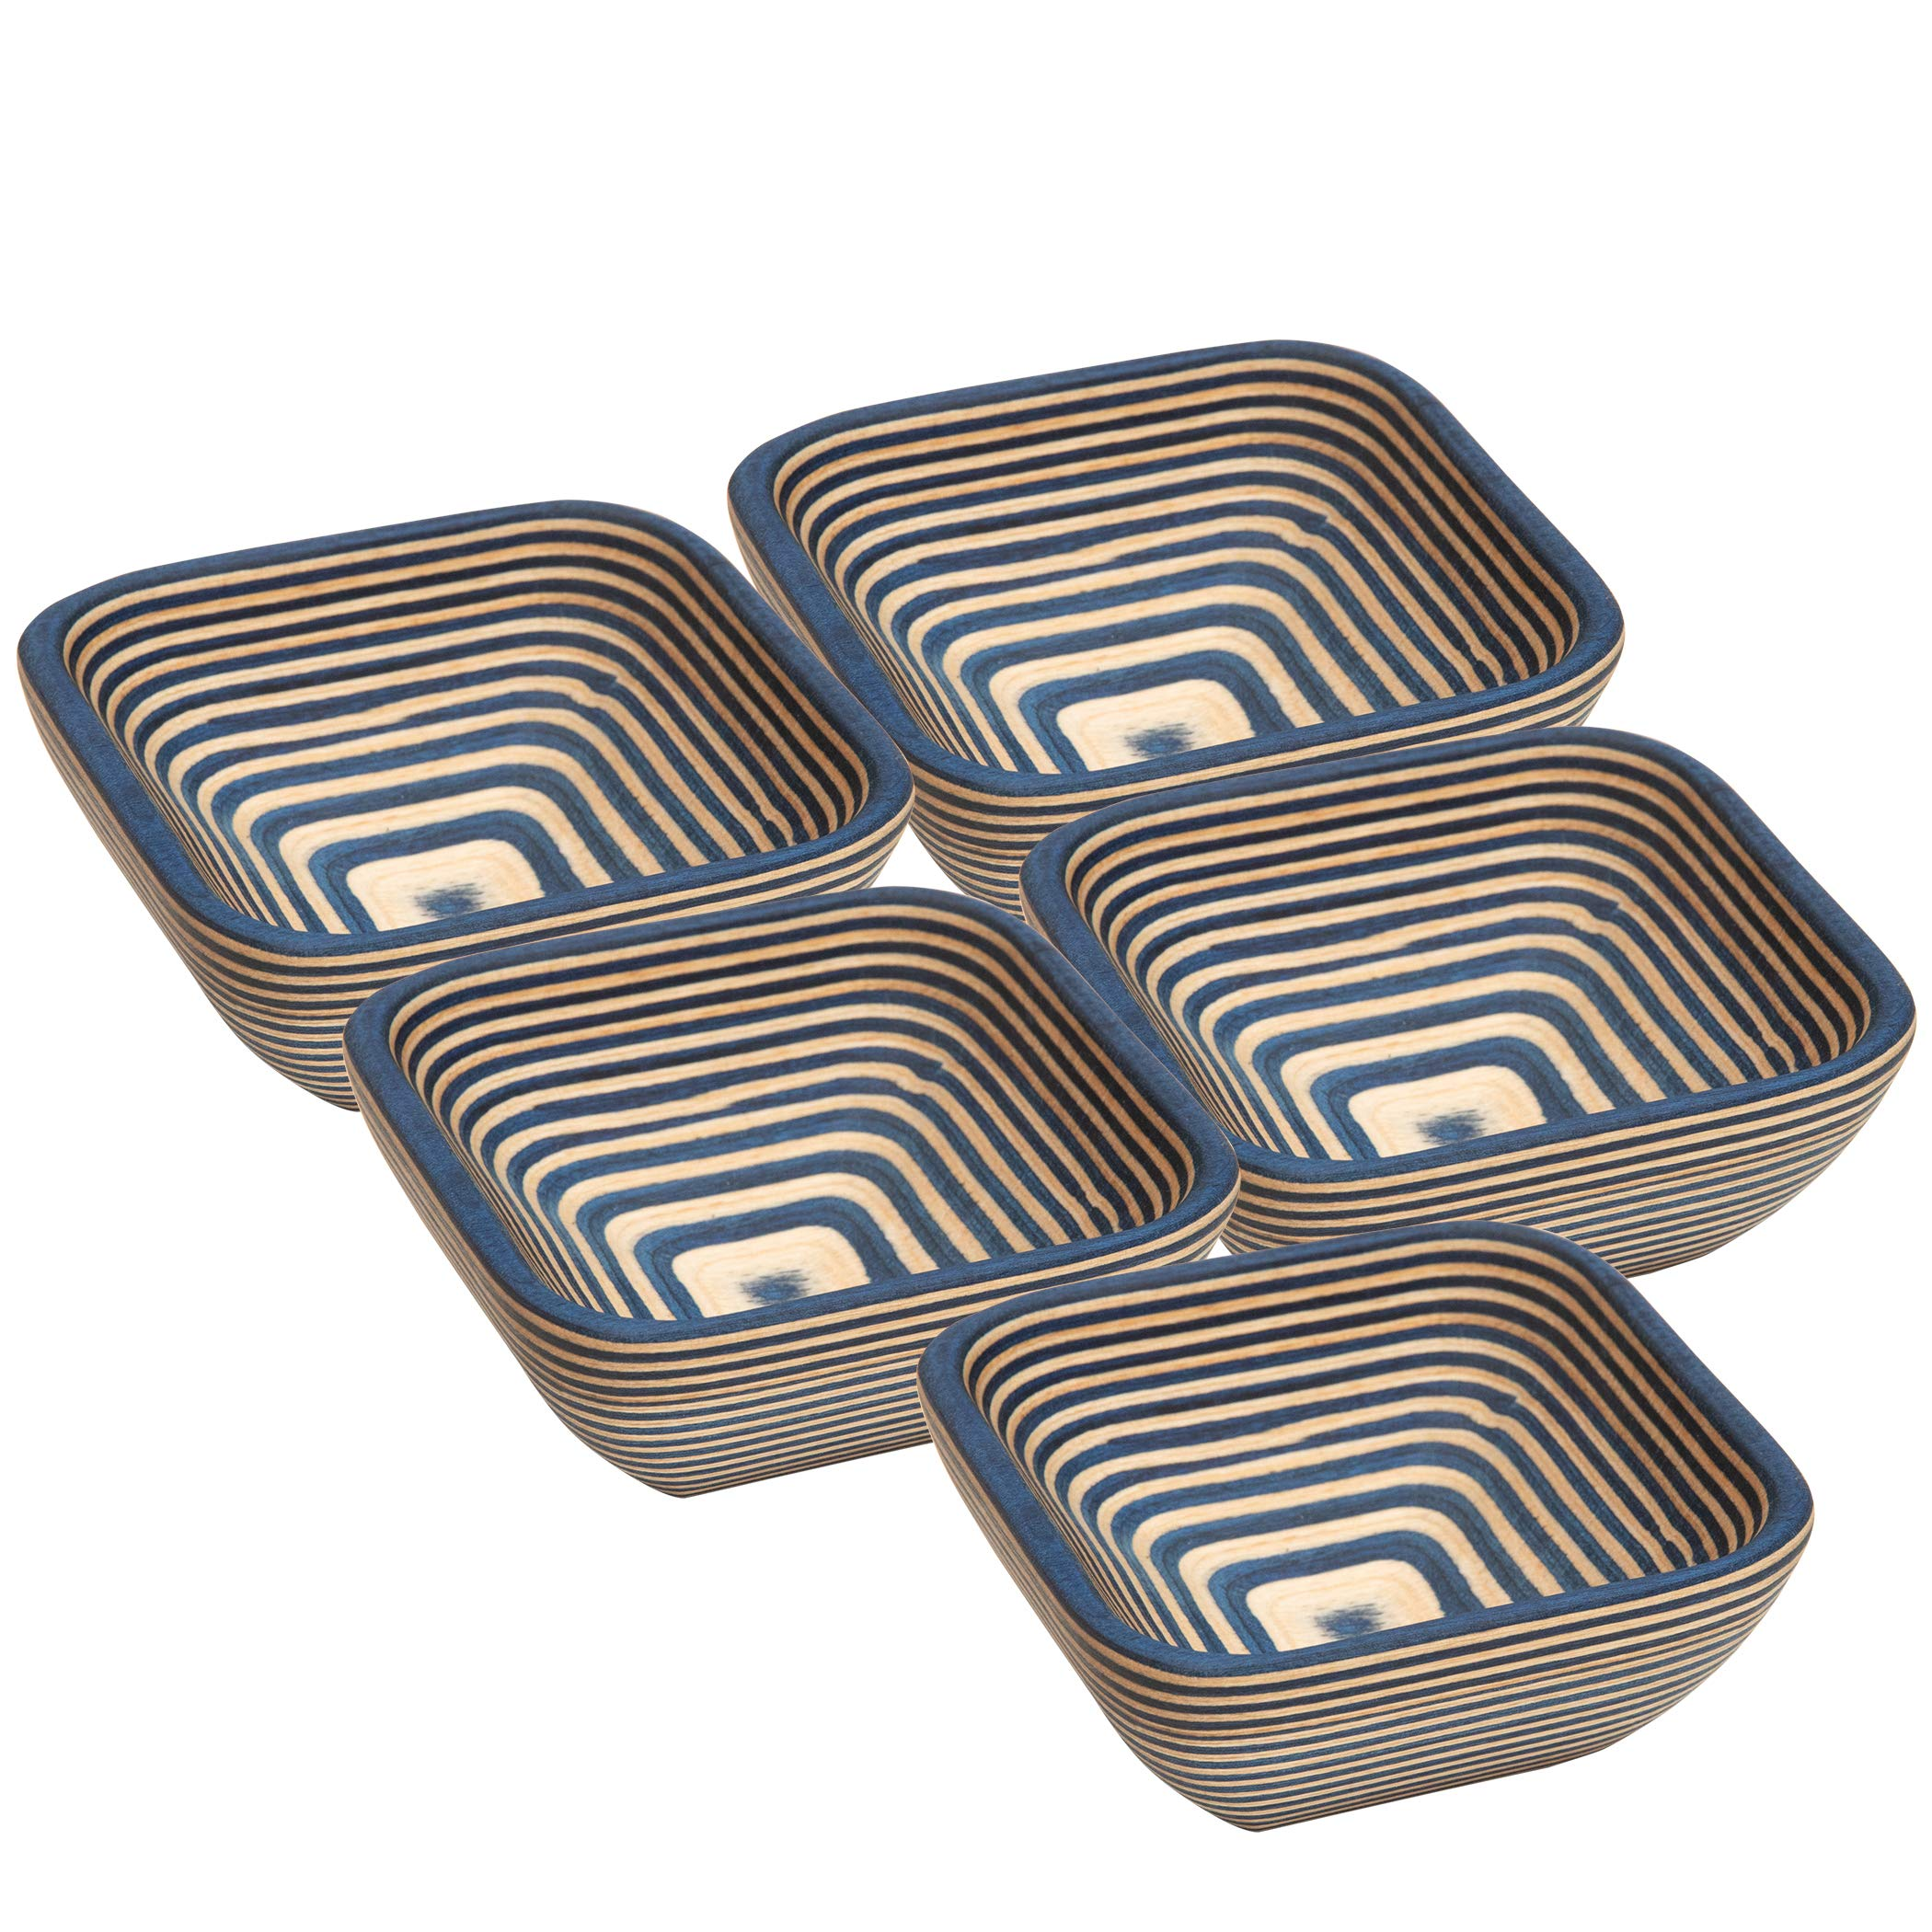 Exotic PakkaWood Condiment Bowls Set - 5 Stacking Square Bowls for Condiments, Snacks, and More by Crate Collective (Cobalt)